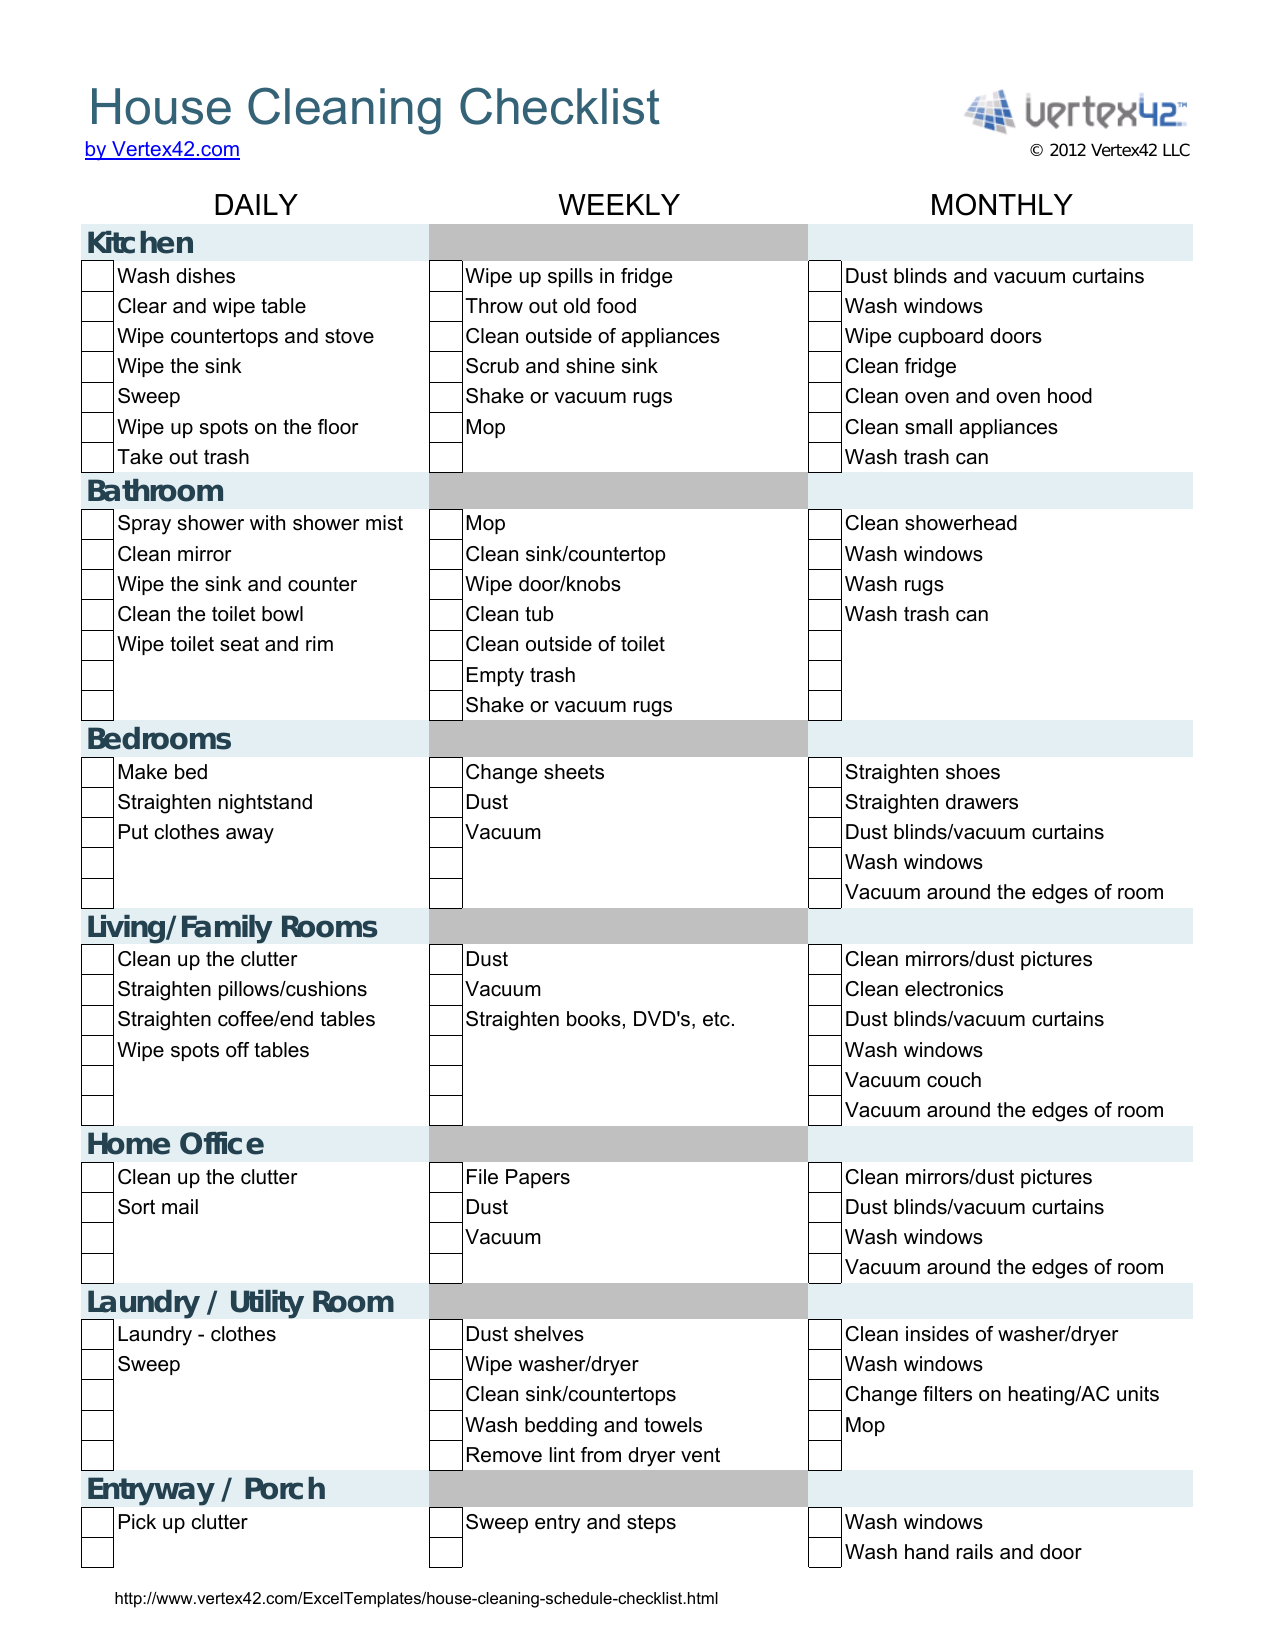 Apartment cleaning checklist templates kleo. Wagenaardentistry. Com.